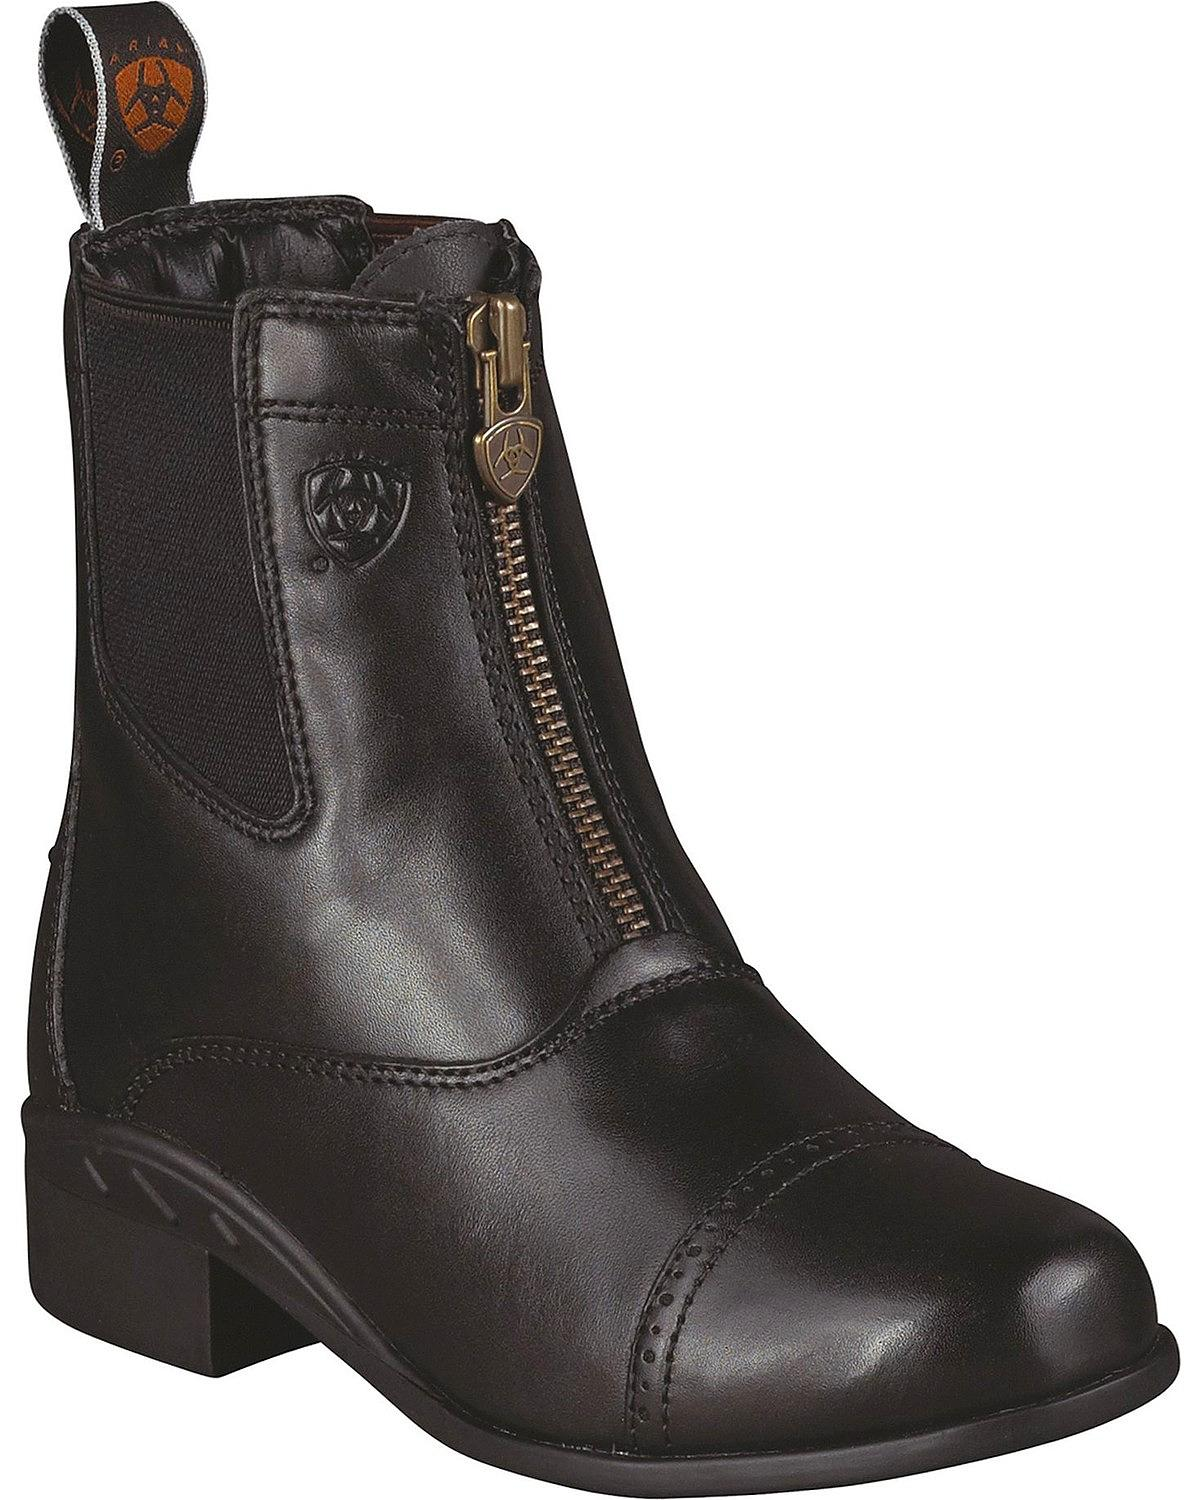 Ariat Boys' Devon Ankle Riding Boot 10001835 by Ariat